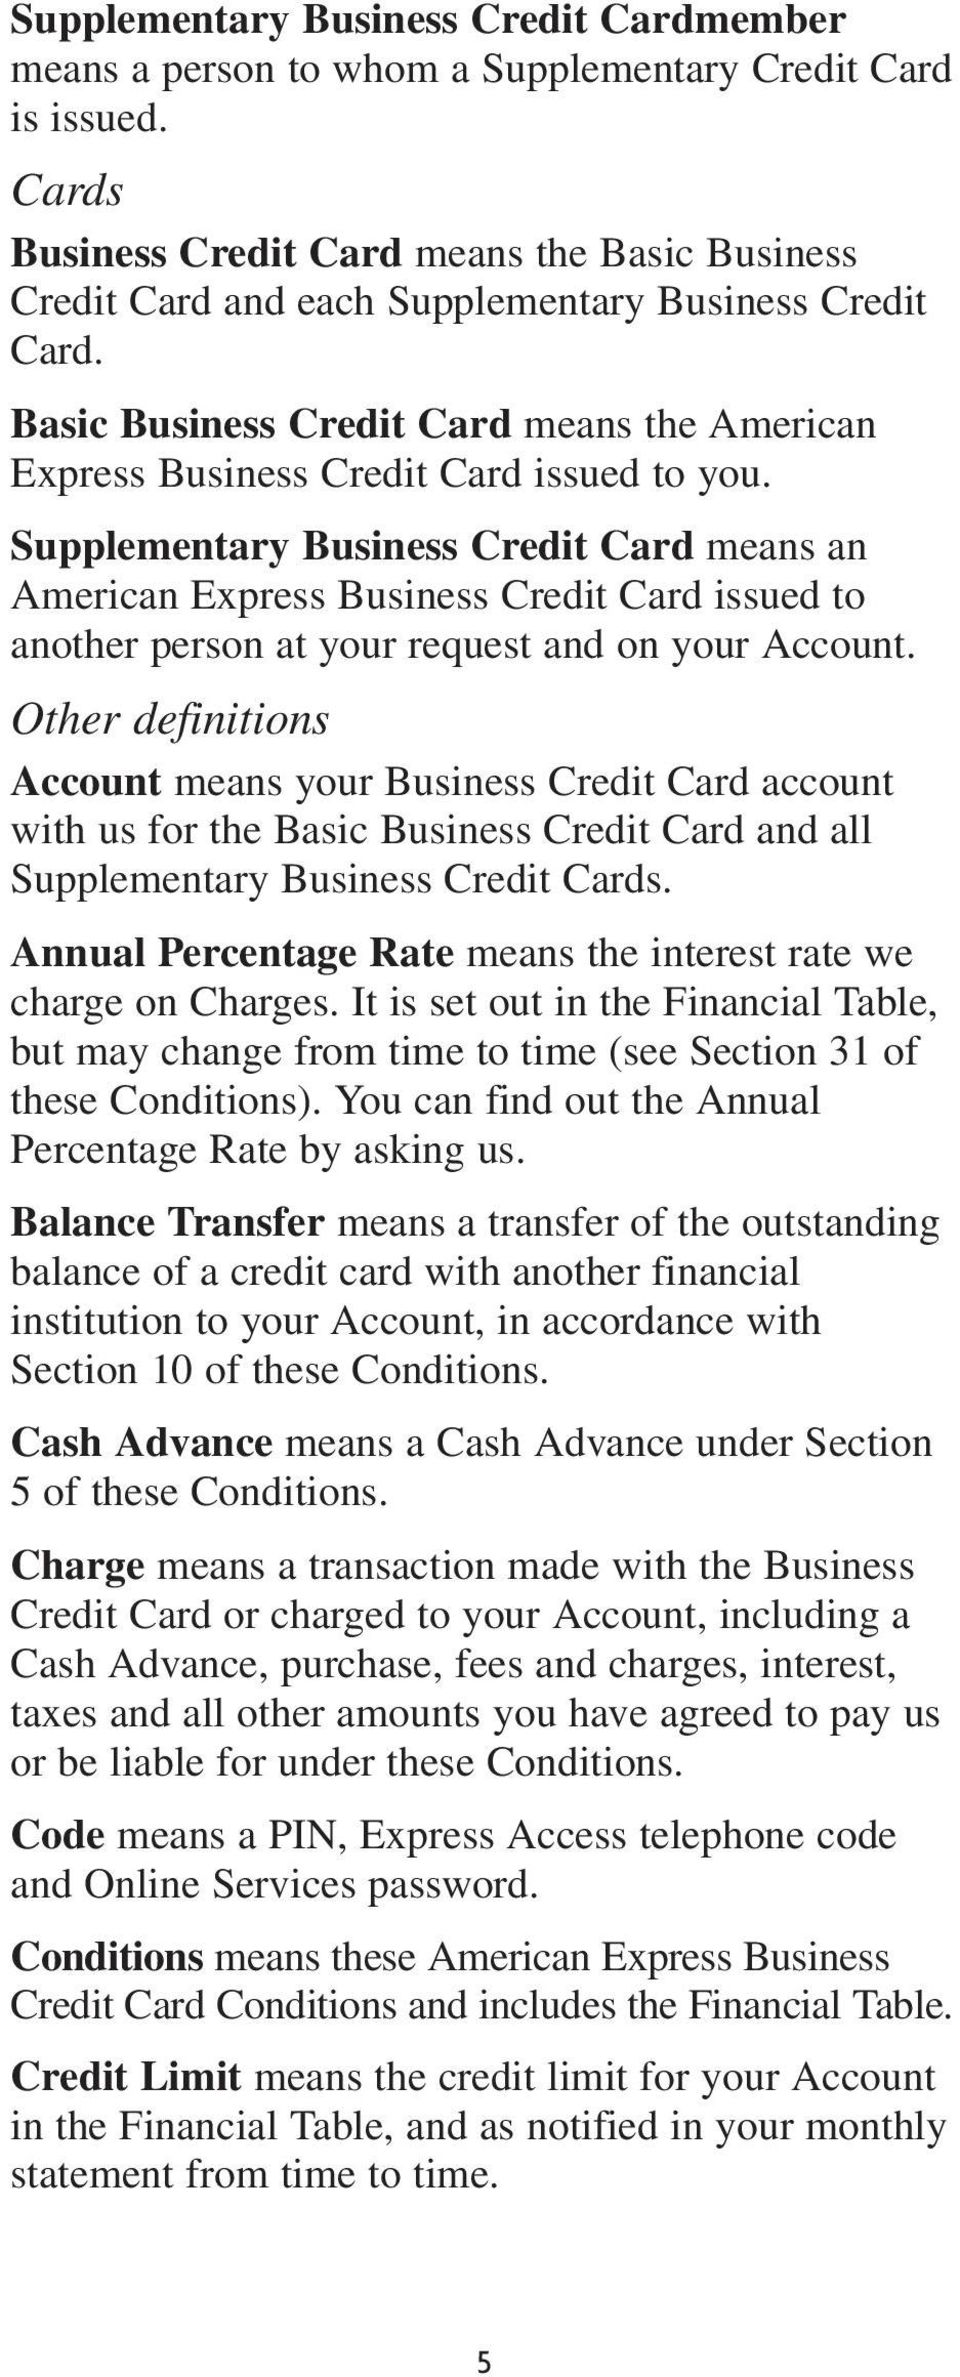 Supplementary Business Credit Card means an American Express Business Credit Card issued to another person at your request and on your Account.